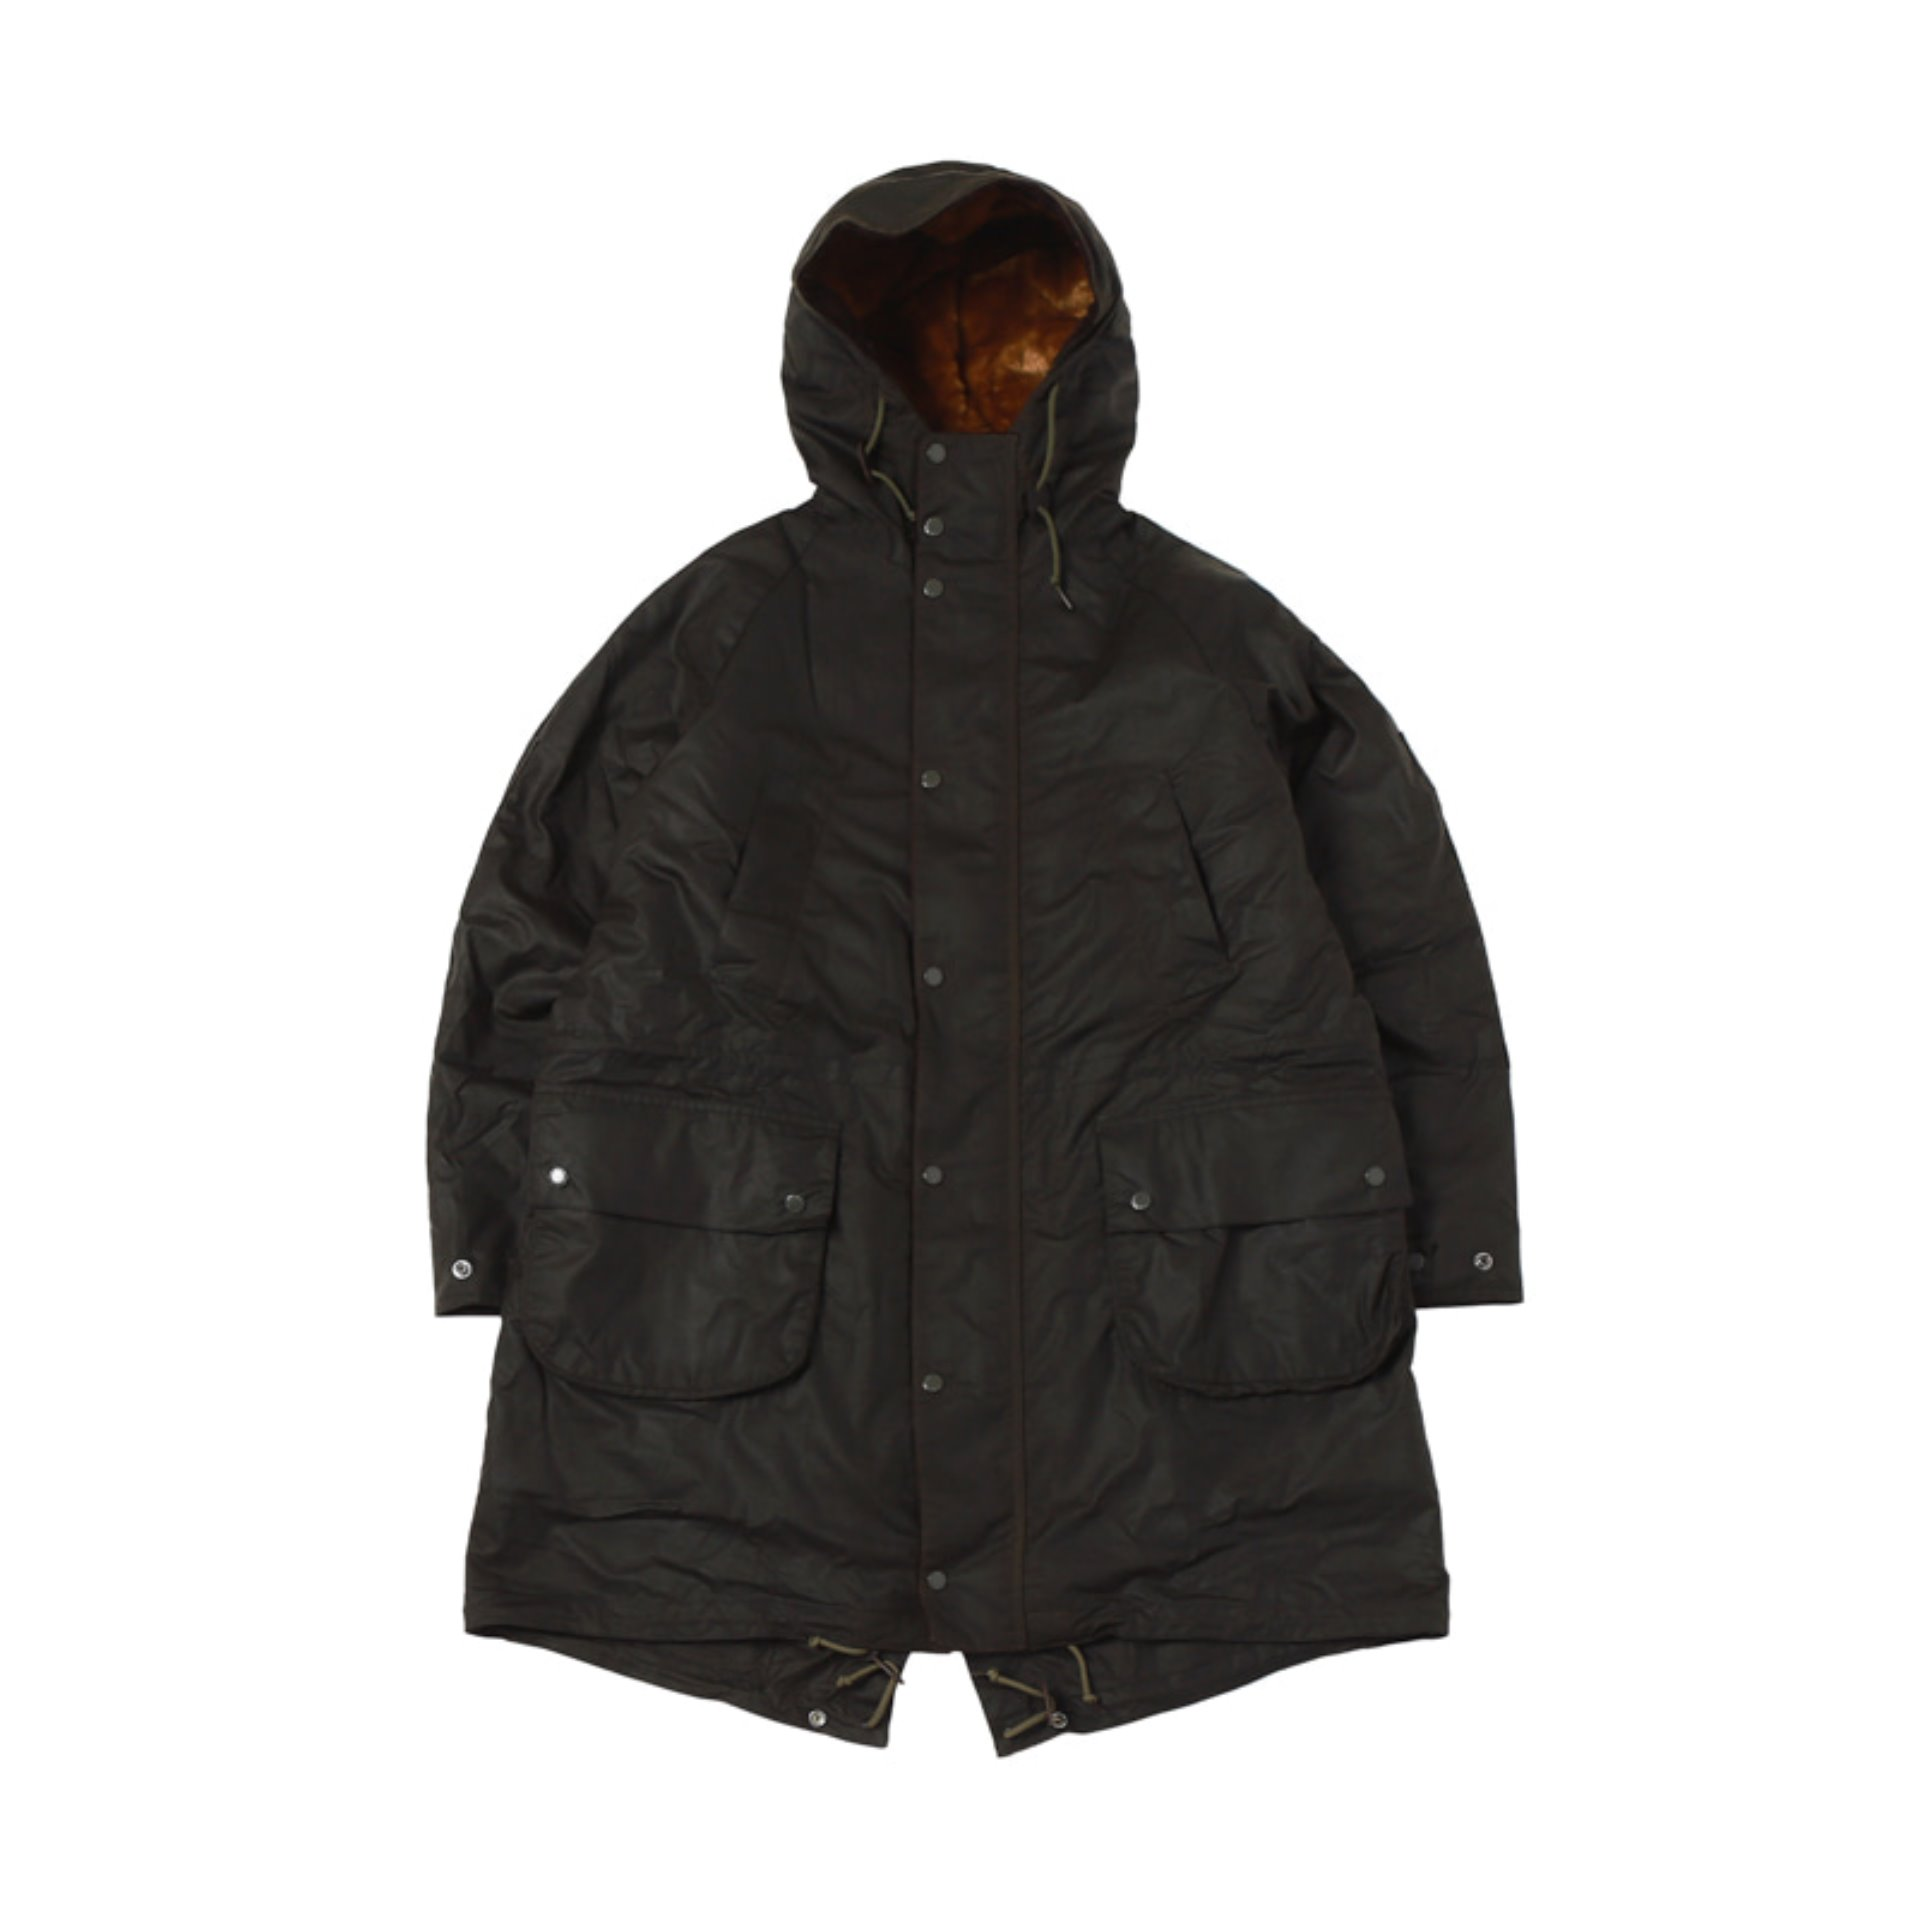 BARBOUR x ENGINEER GARMENTS HIGHLAND PARKA (Olive)